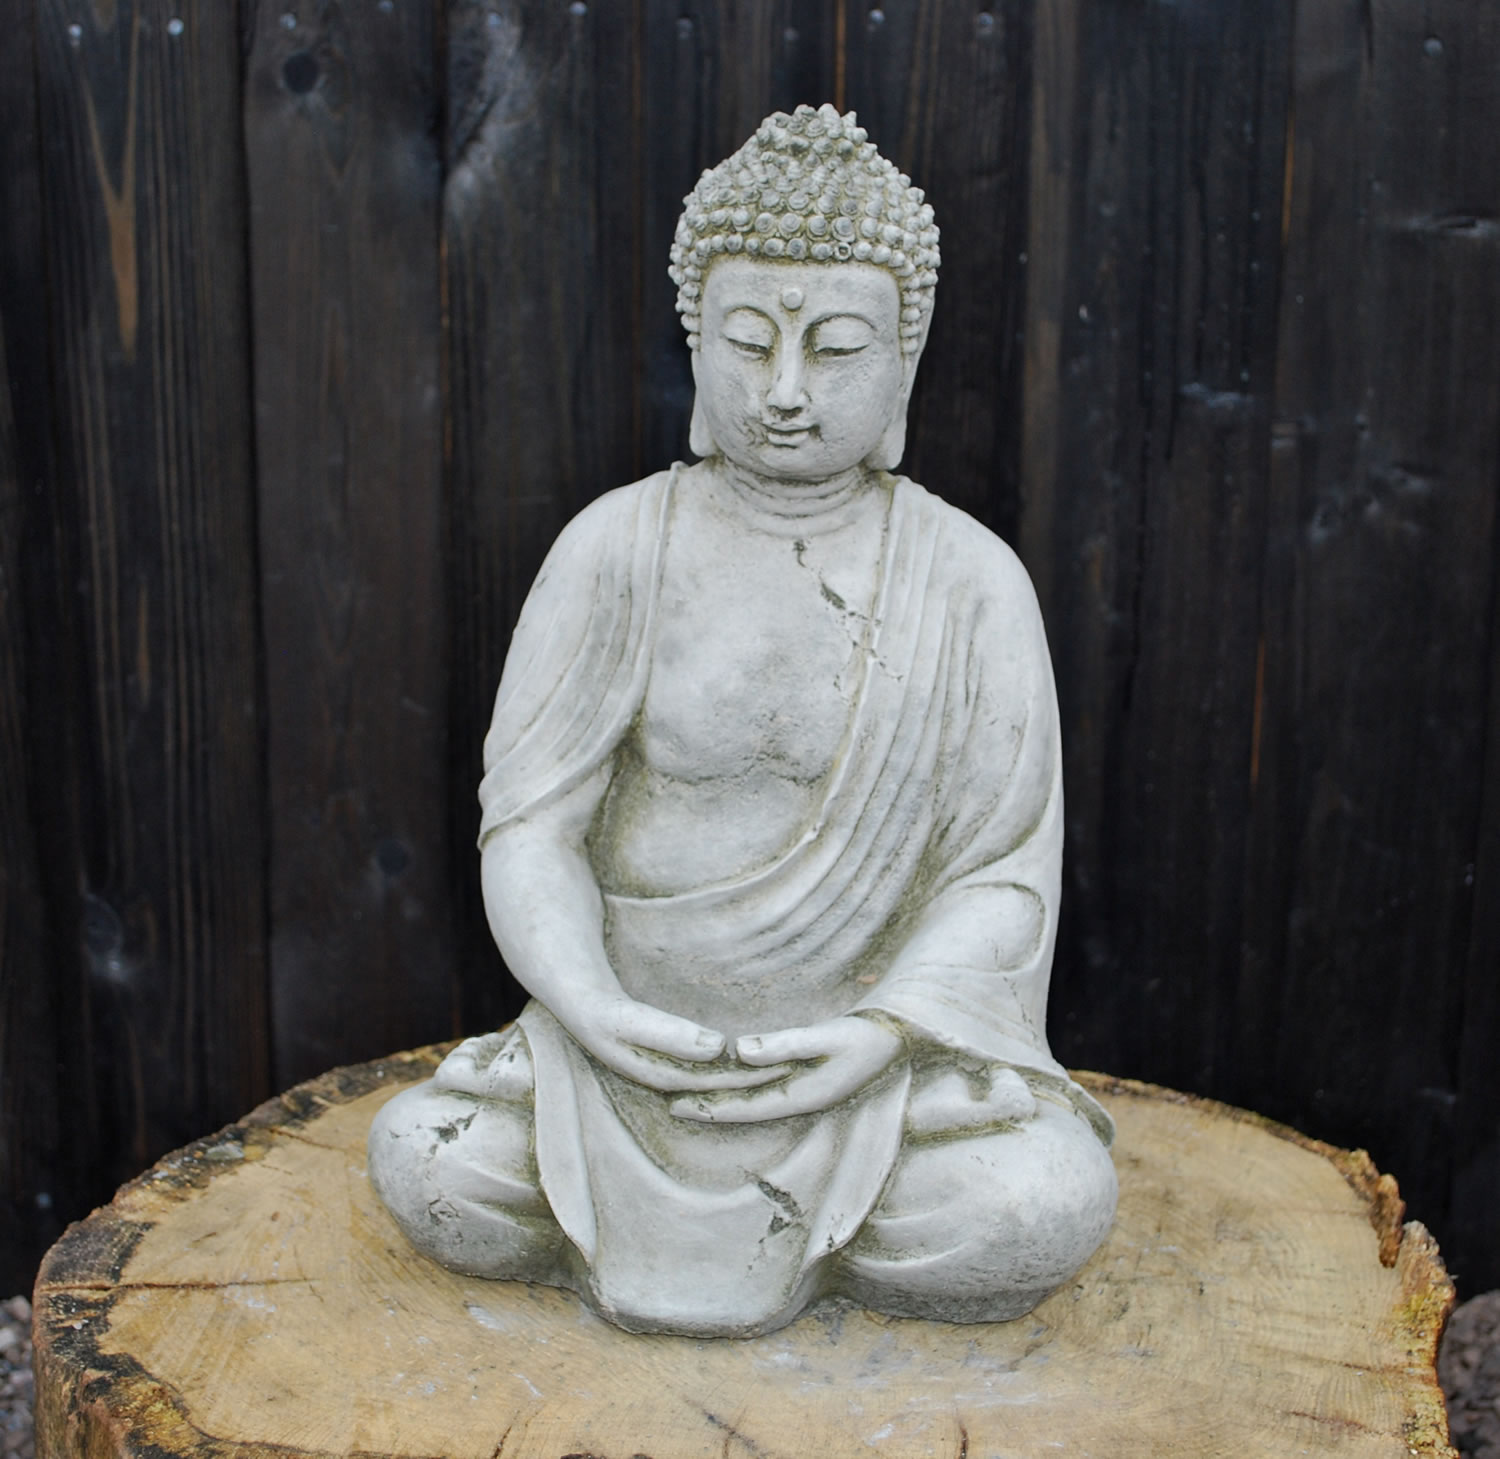 Ancient Buddha Stone Garden Ornament - BD12 - £35.99  Garden4Less UK ...